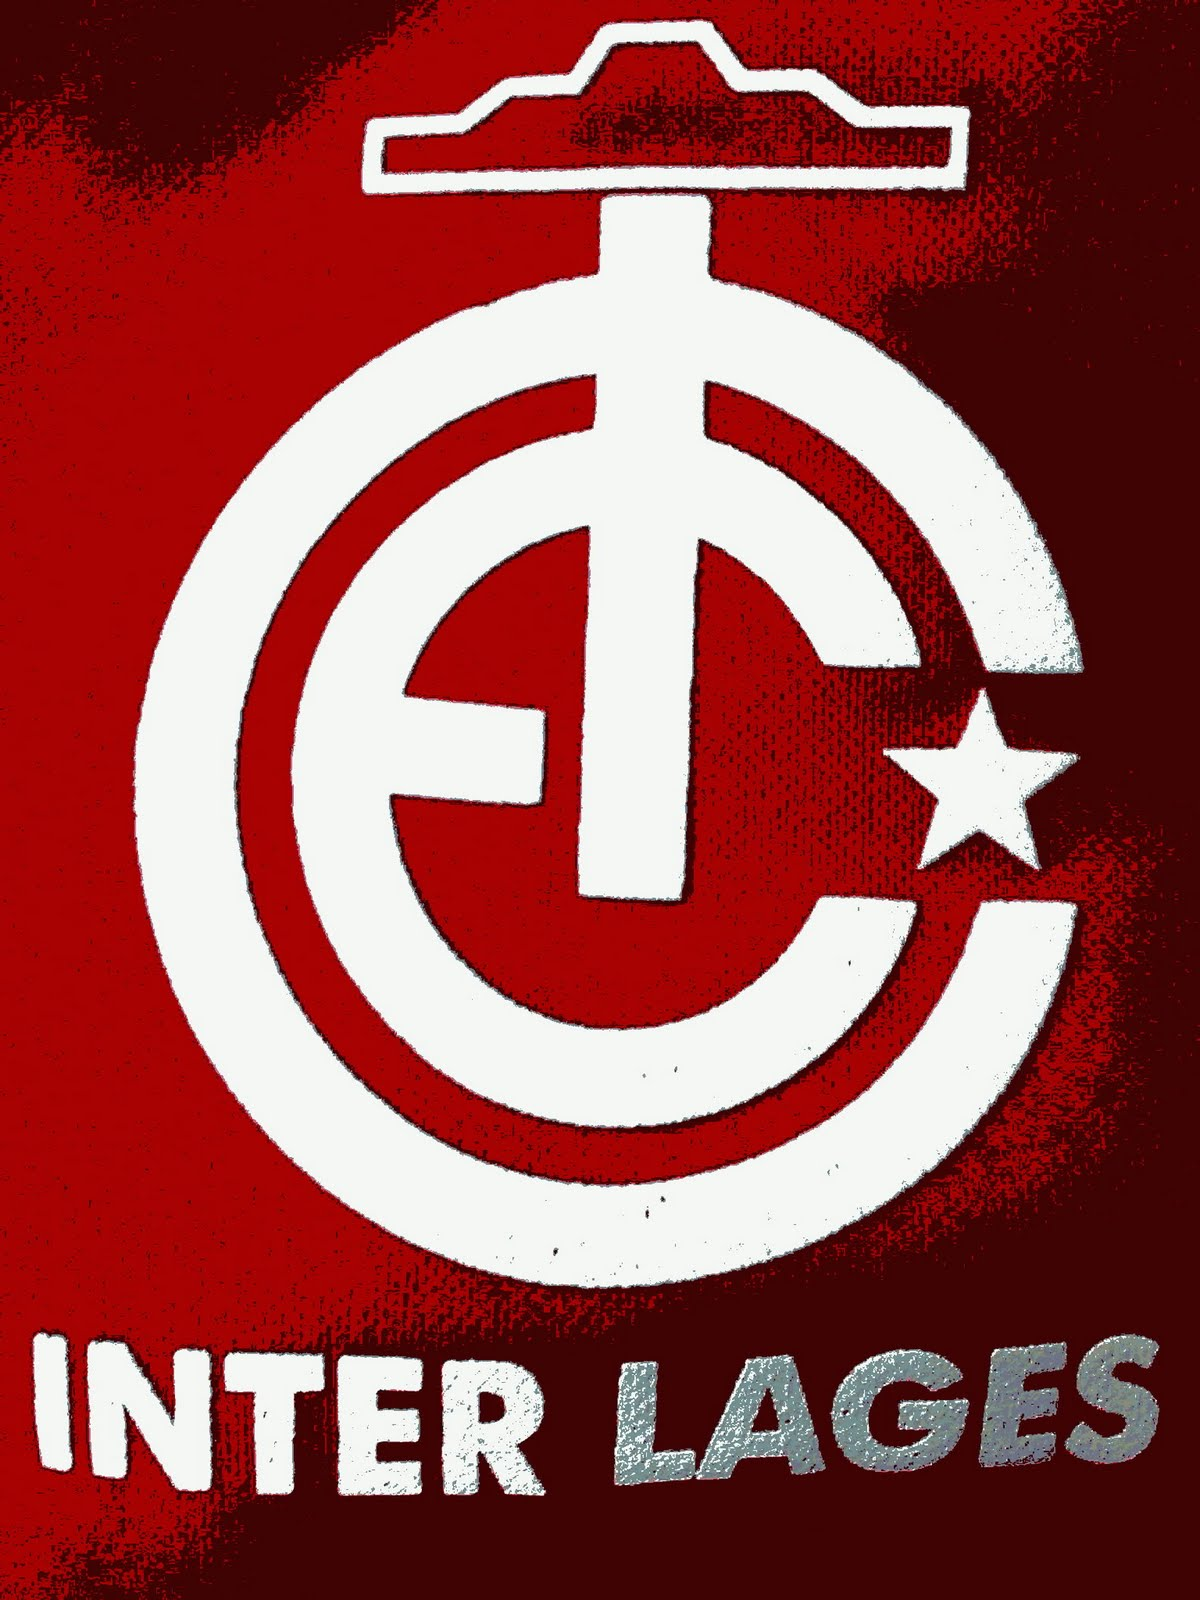 HISTÓRIA DO INTER DE LAGES